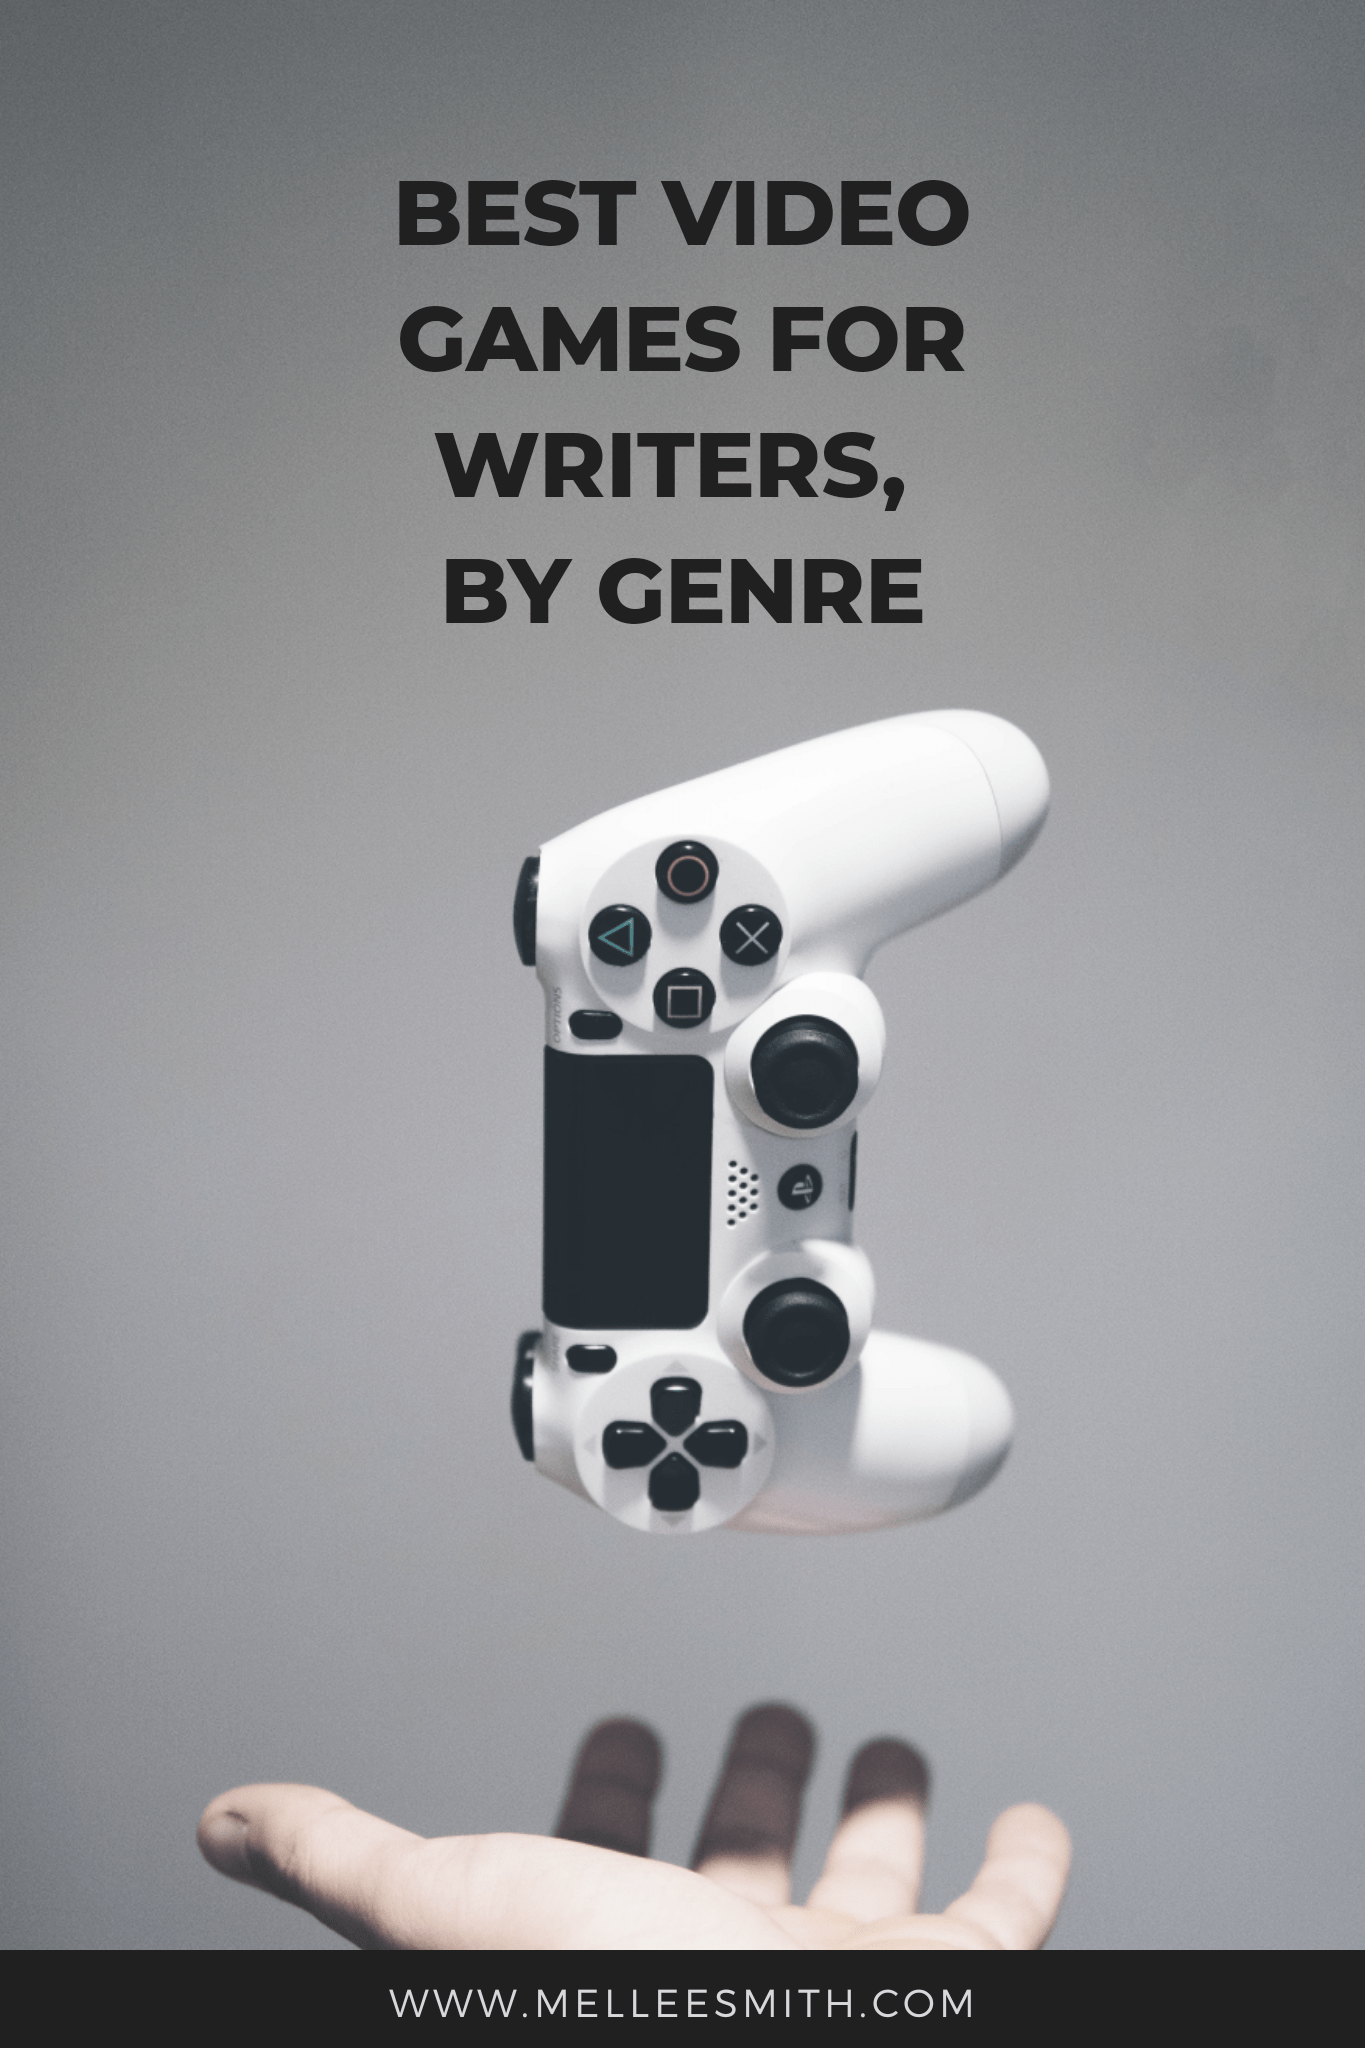 The best video games for writers by genre  Mel LeeSmith